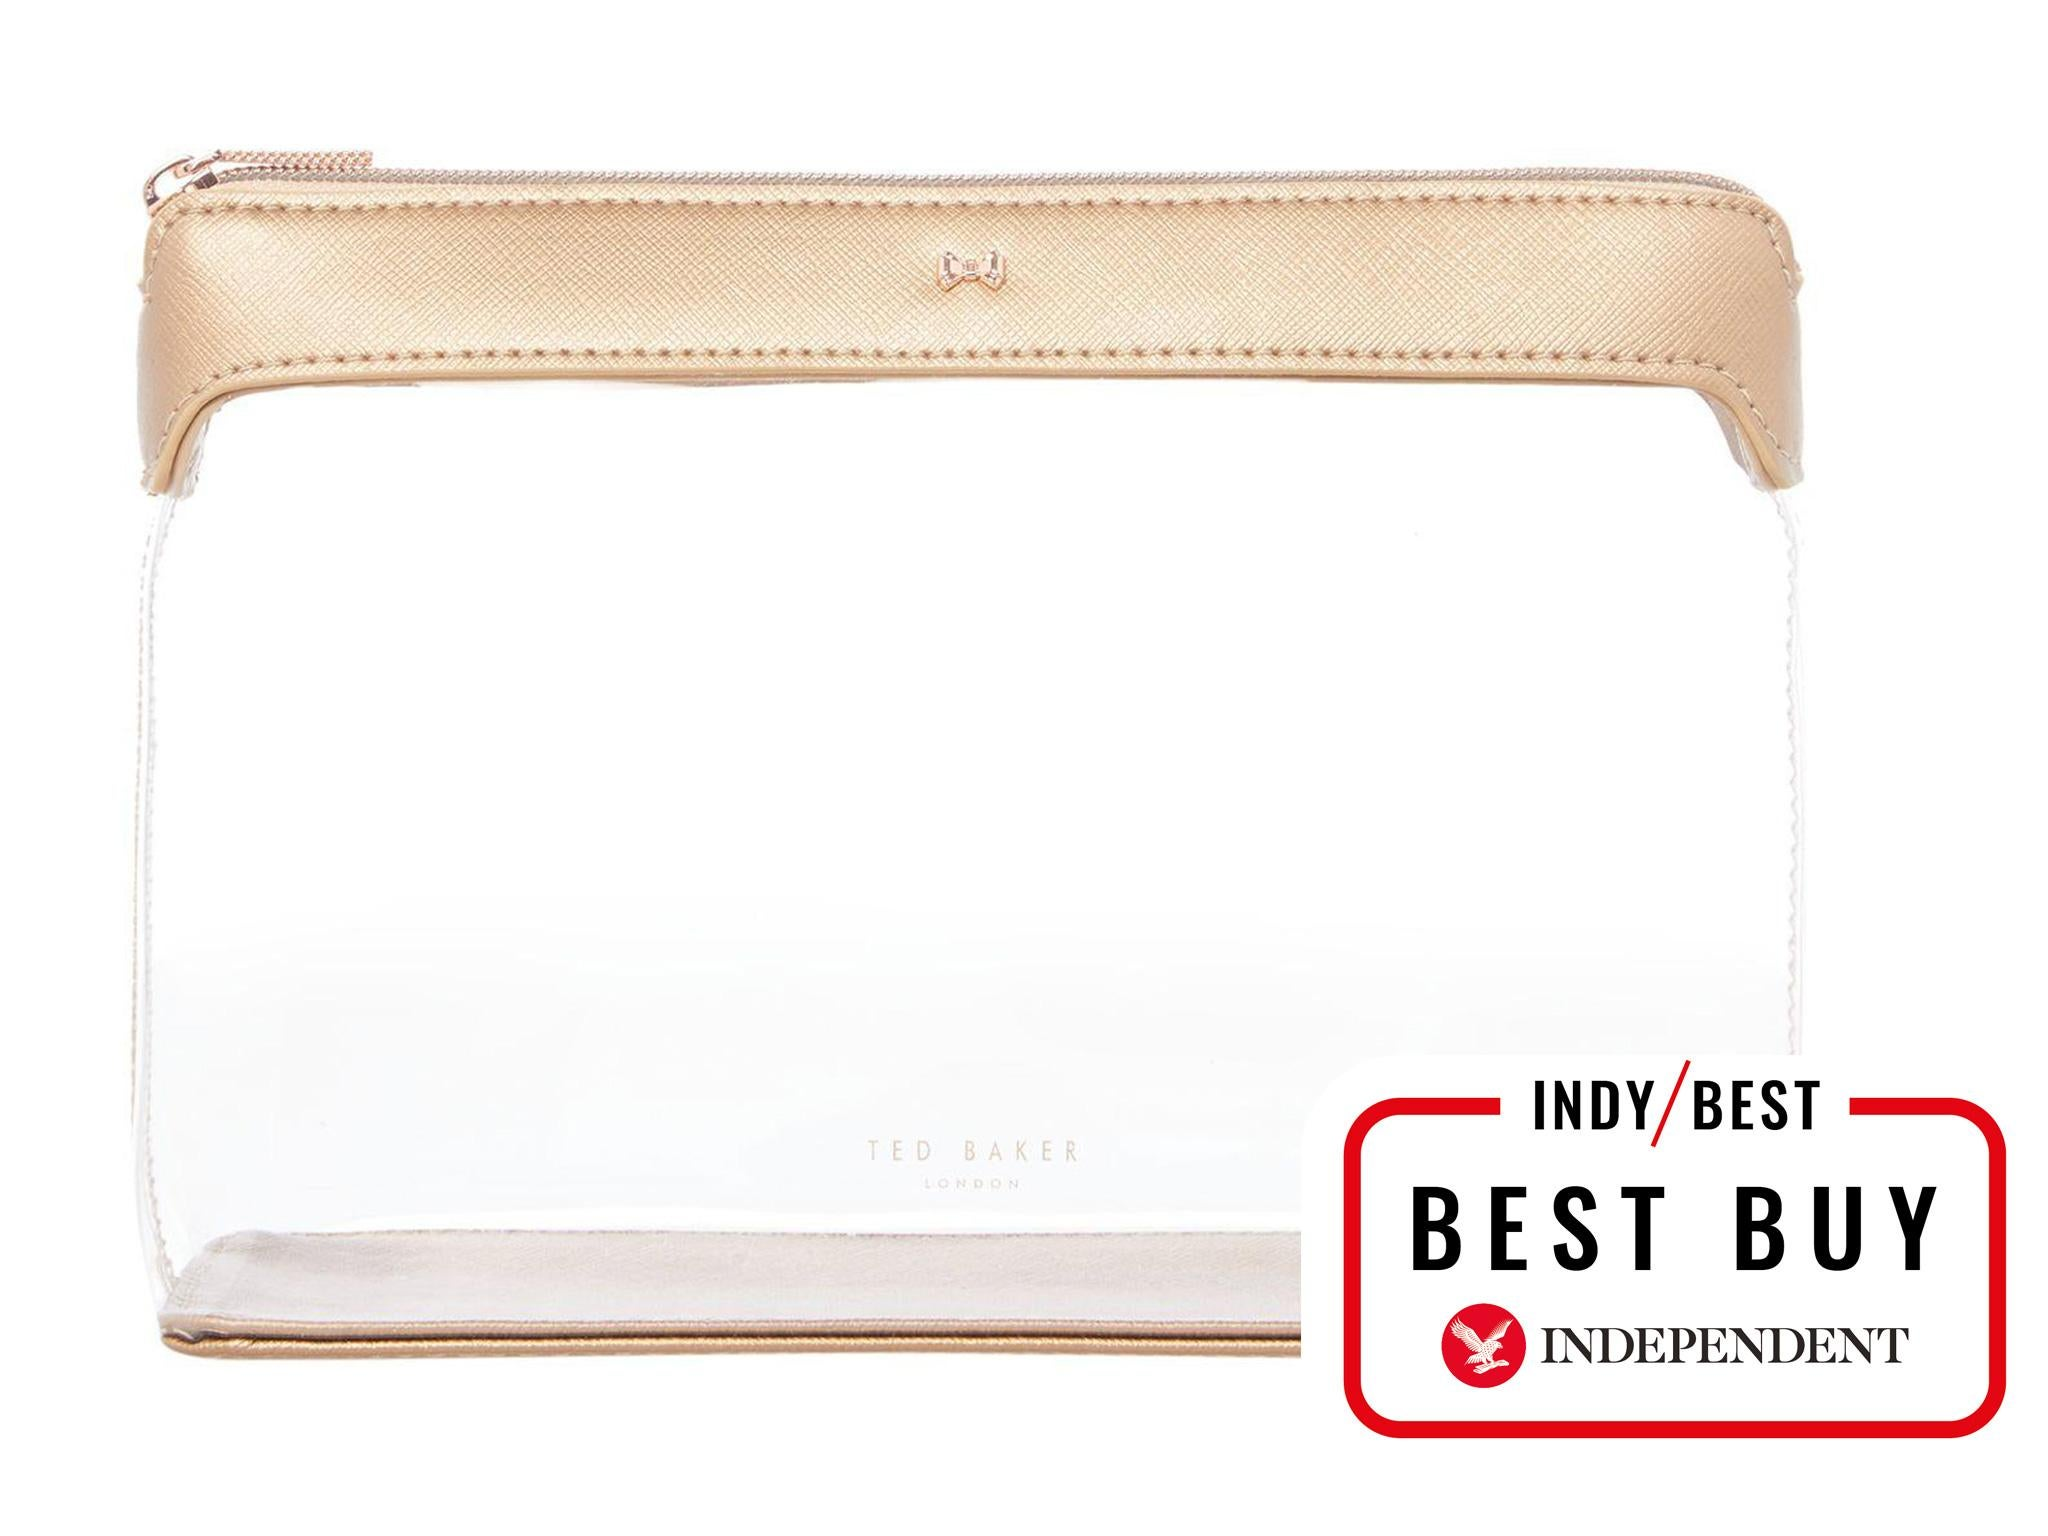 If you want a simple, no-fuss wash bag that s still stylish, look no  further than this one from high street favourite Ted Baker. With a  see-through exterior ... 299716f821